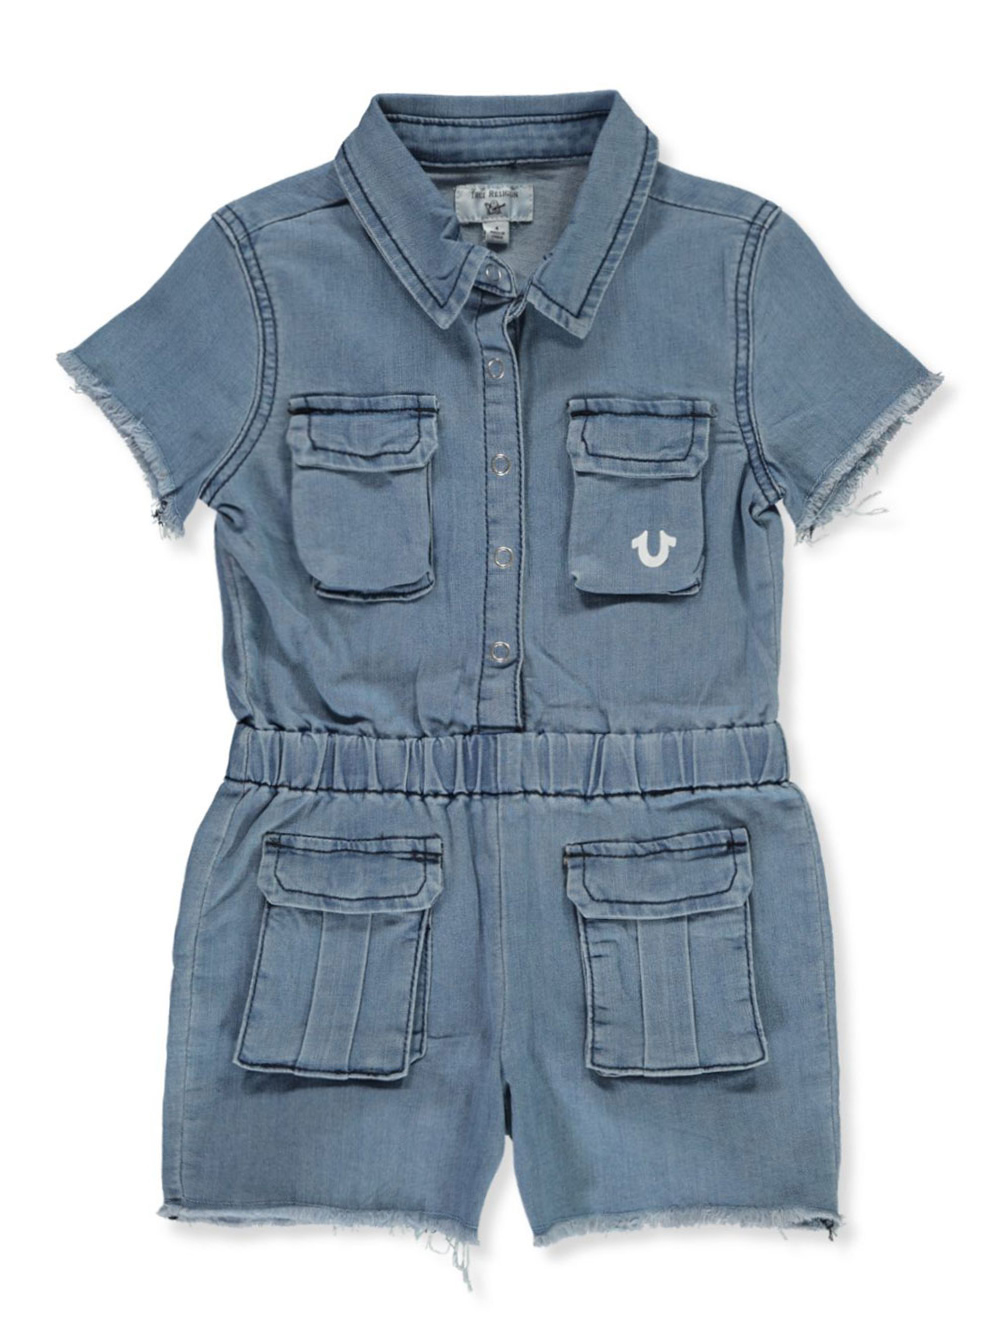 Girls Overalls Jumpers